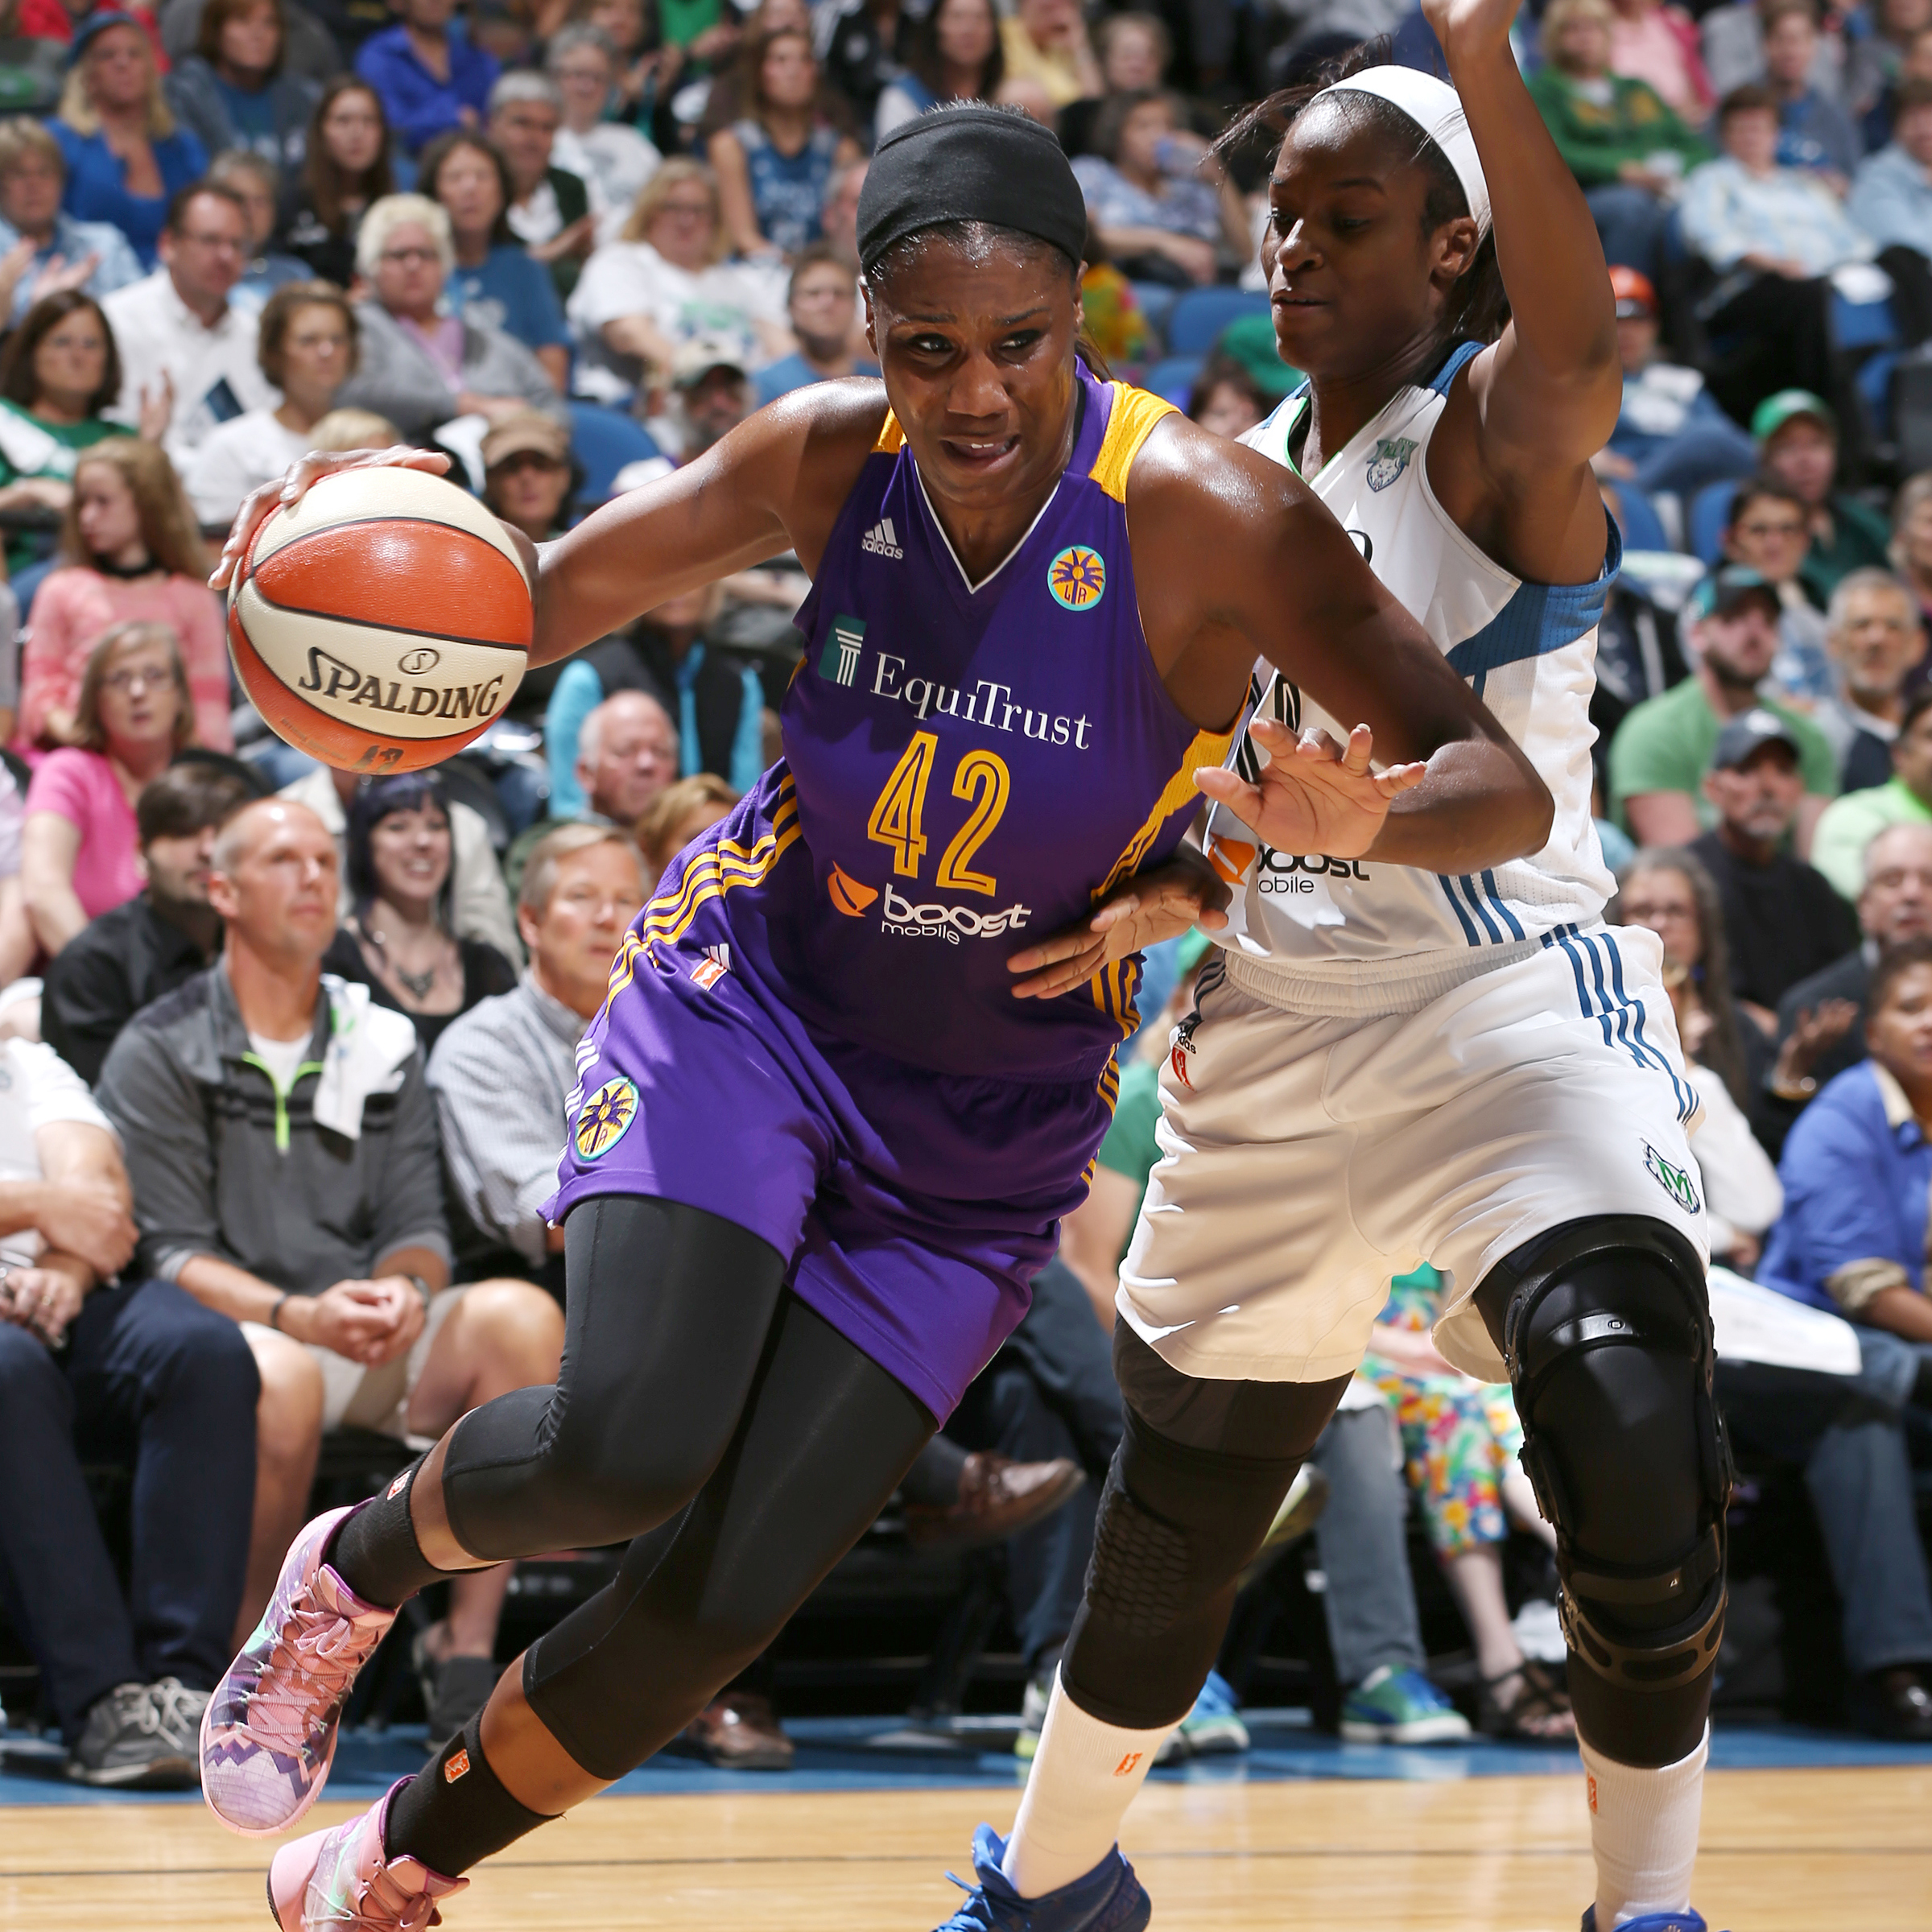 MINNEAPOLIS, MN - SEPTEMBER 18:  Jantel Lavender #42 of the Los Angeles Sparks drives to the basket against the Minnesota Lynx during Game 1 of the 2015 WNBA Western Conference Semifinal on September 18, 2015 at Target Center in Minneapolis, Minnesota.  NOTE TO USER: User expressly acknowledges and agrees that, by downloading and or using this Photograph, user is consenting to the terms and conditions of the Getty Images License Agreement. Mandatory Copyright Notice: Copyright 2015 NBAE (Photo by David Sherman/NBAE via Getty Images)